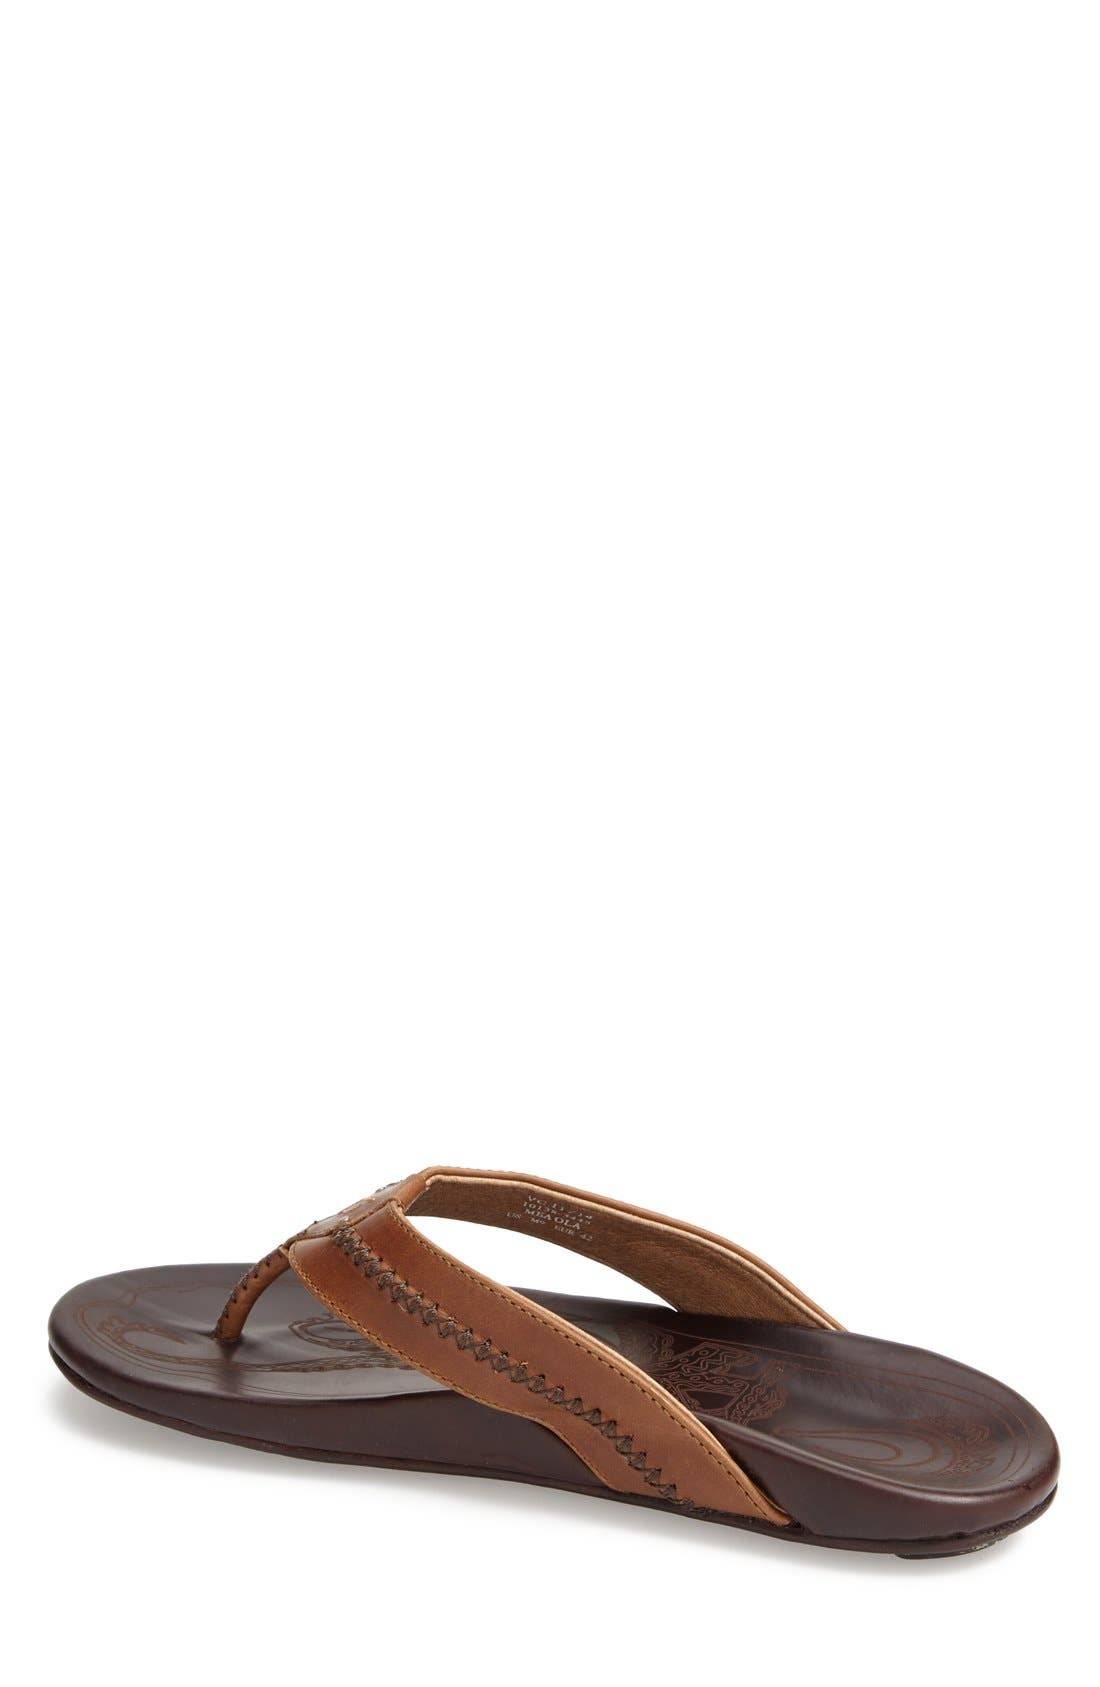 Alternate Image 2  - OluKai 'Mea Ola' Flip Flop (Men)